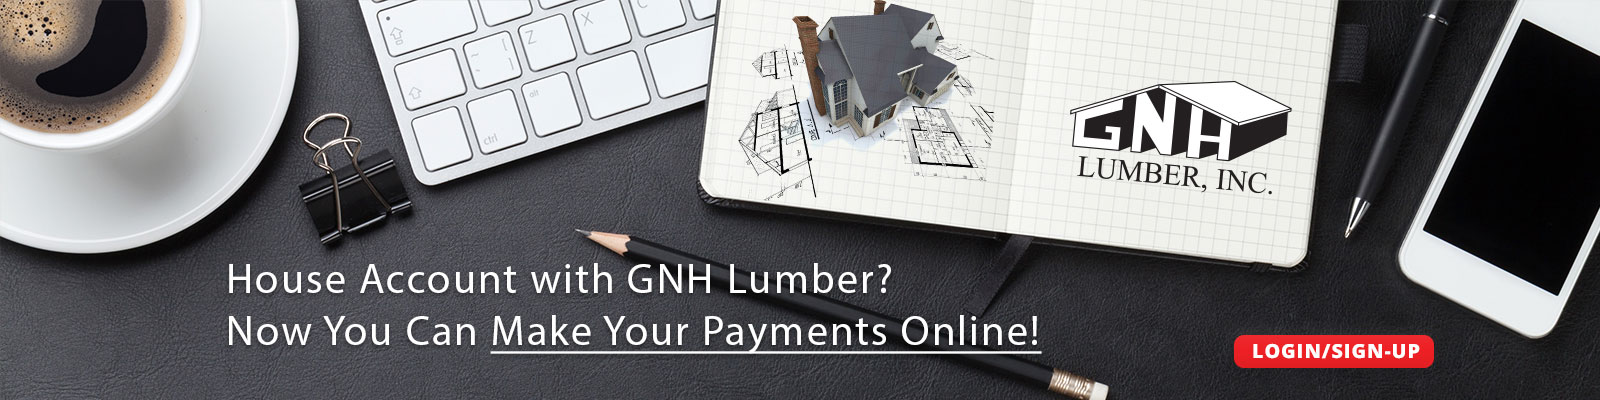 Online Payments at GNH